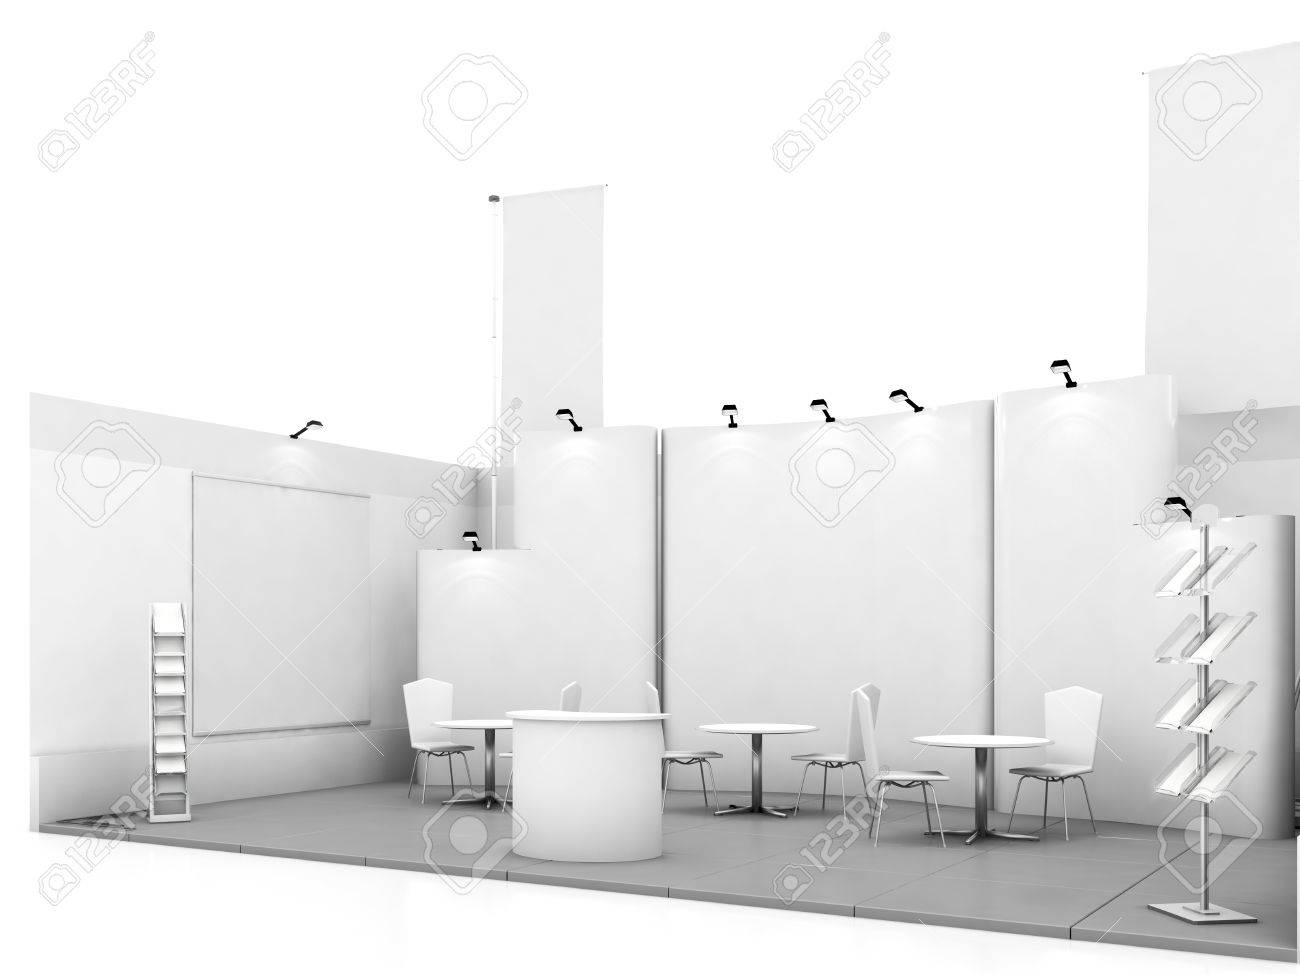 Exhibition Booth Mockup Free Download : Blank trade show booth mock up d illustration stock photo